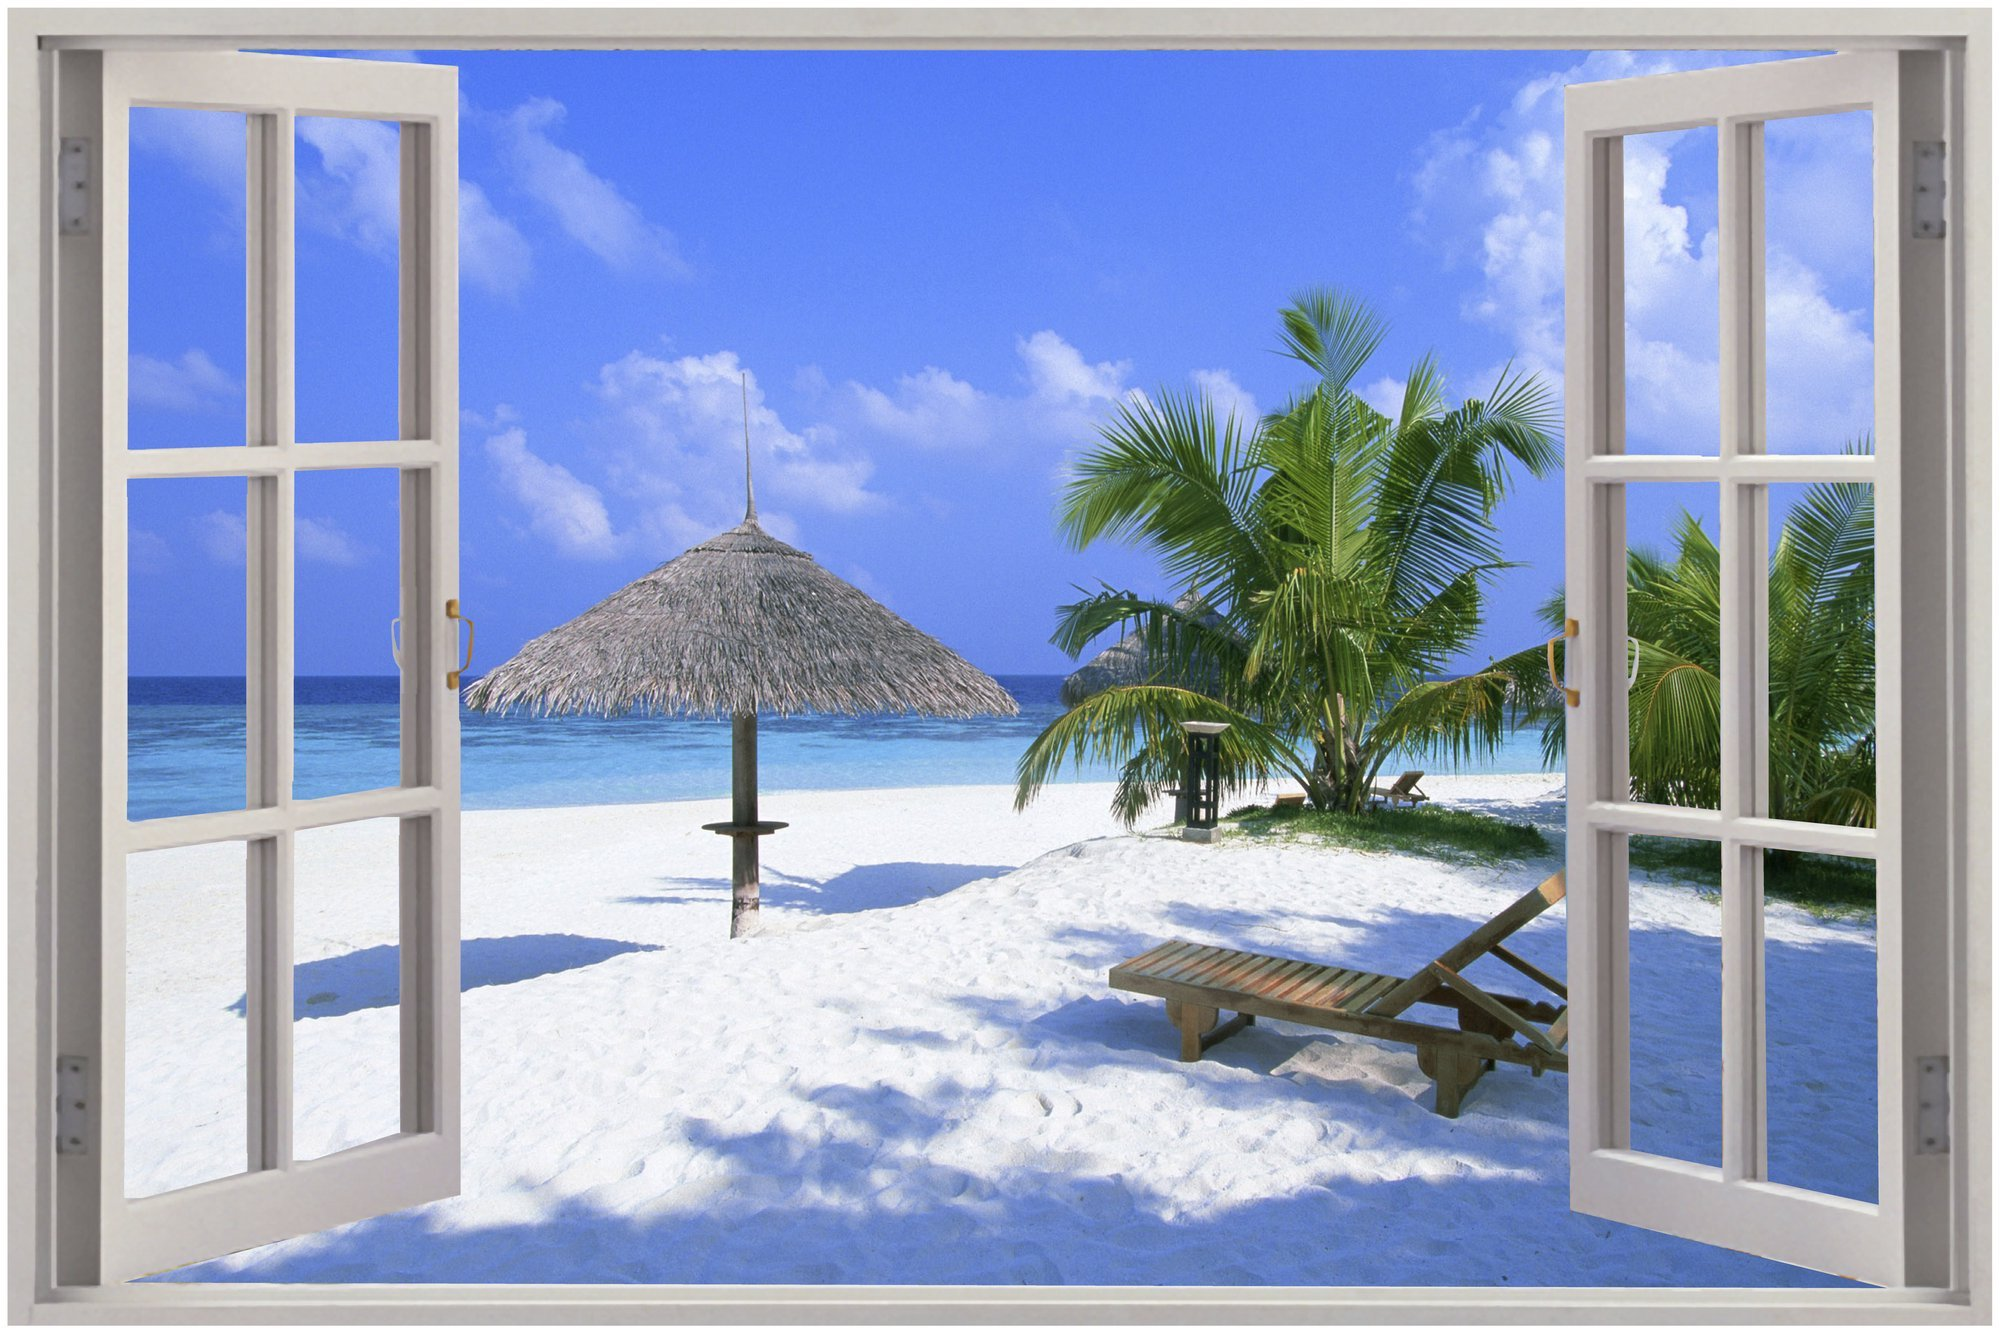 Beach window wallpaper wallpapersafari for Beach mural wallpaper